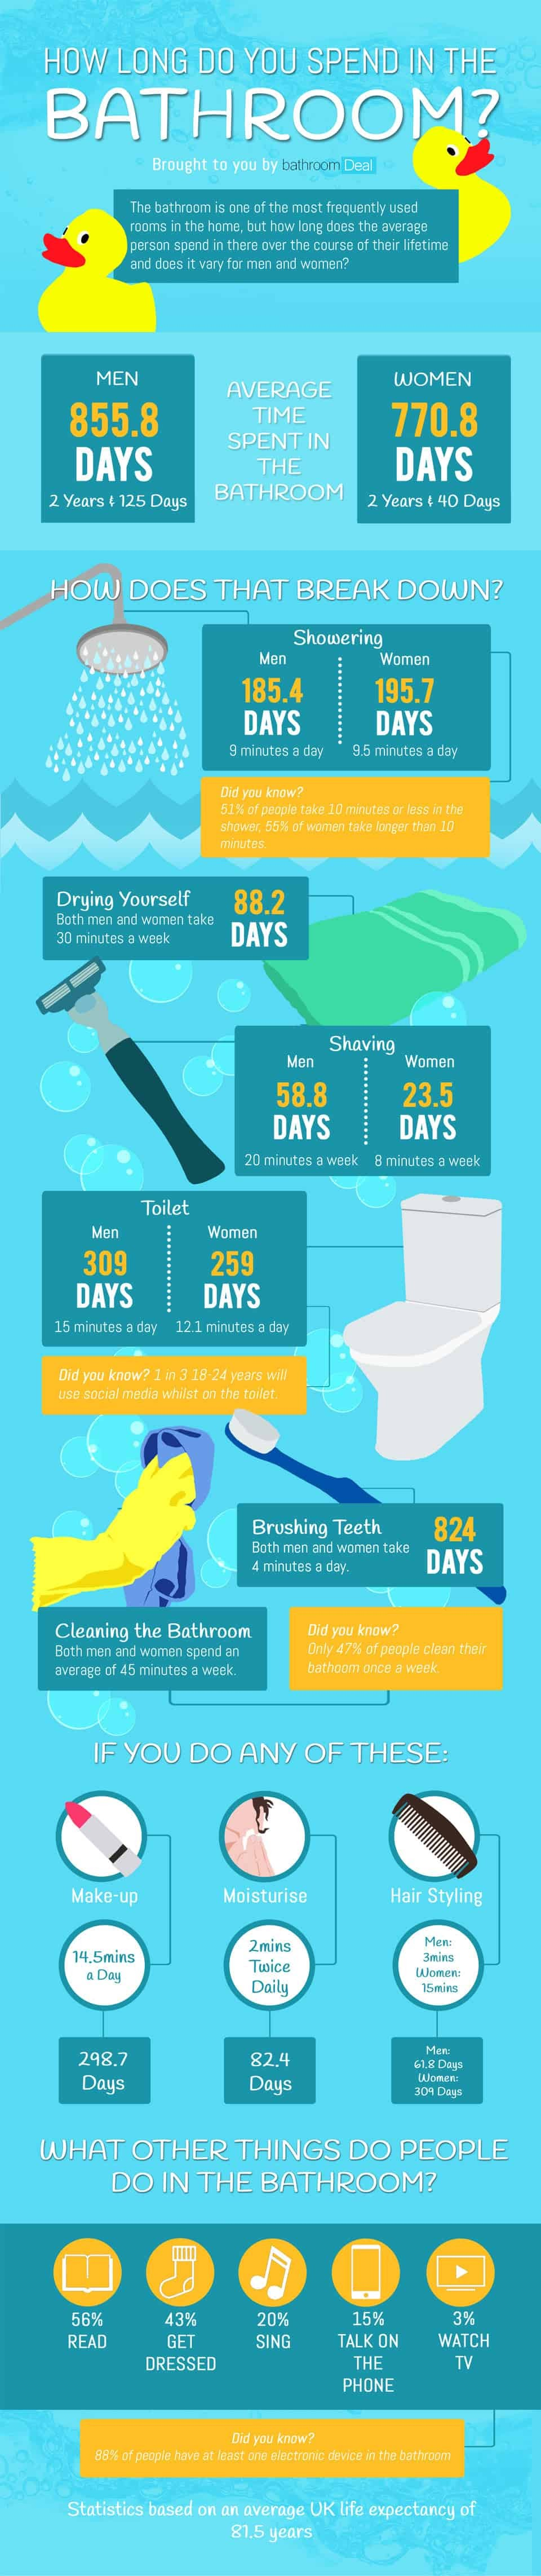 Mad stats about your period in the bathroom #infographic